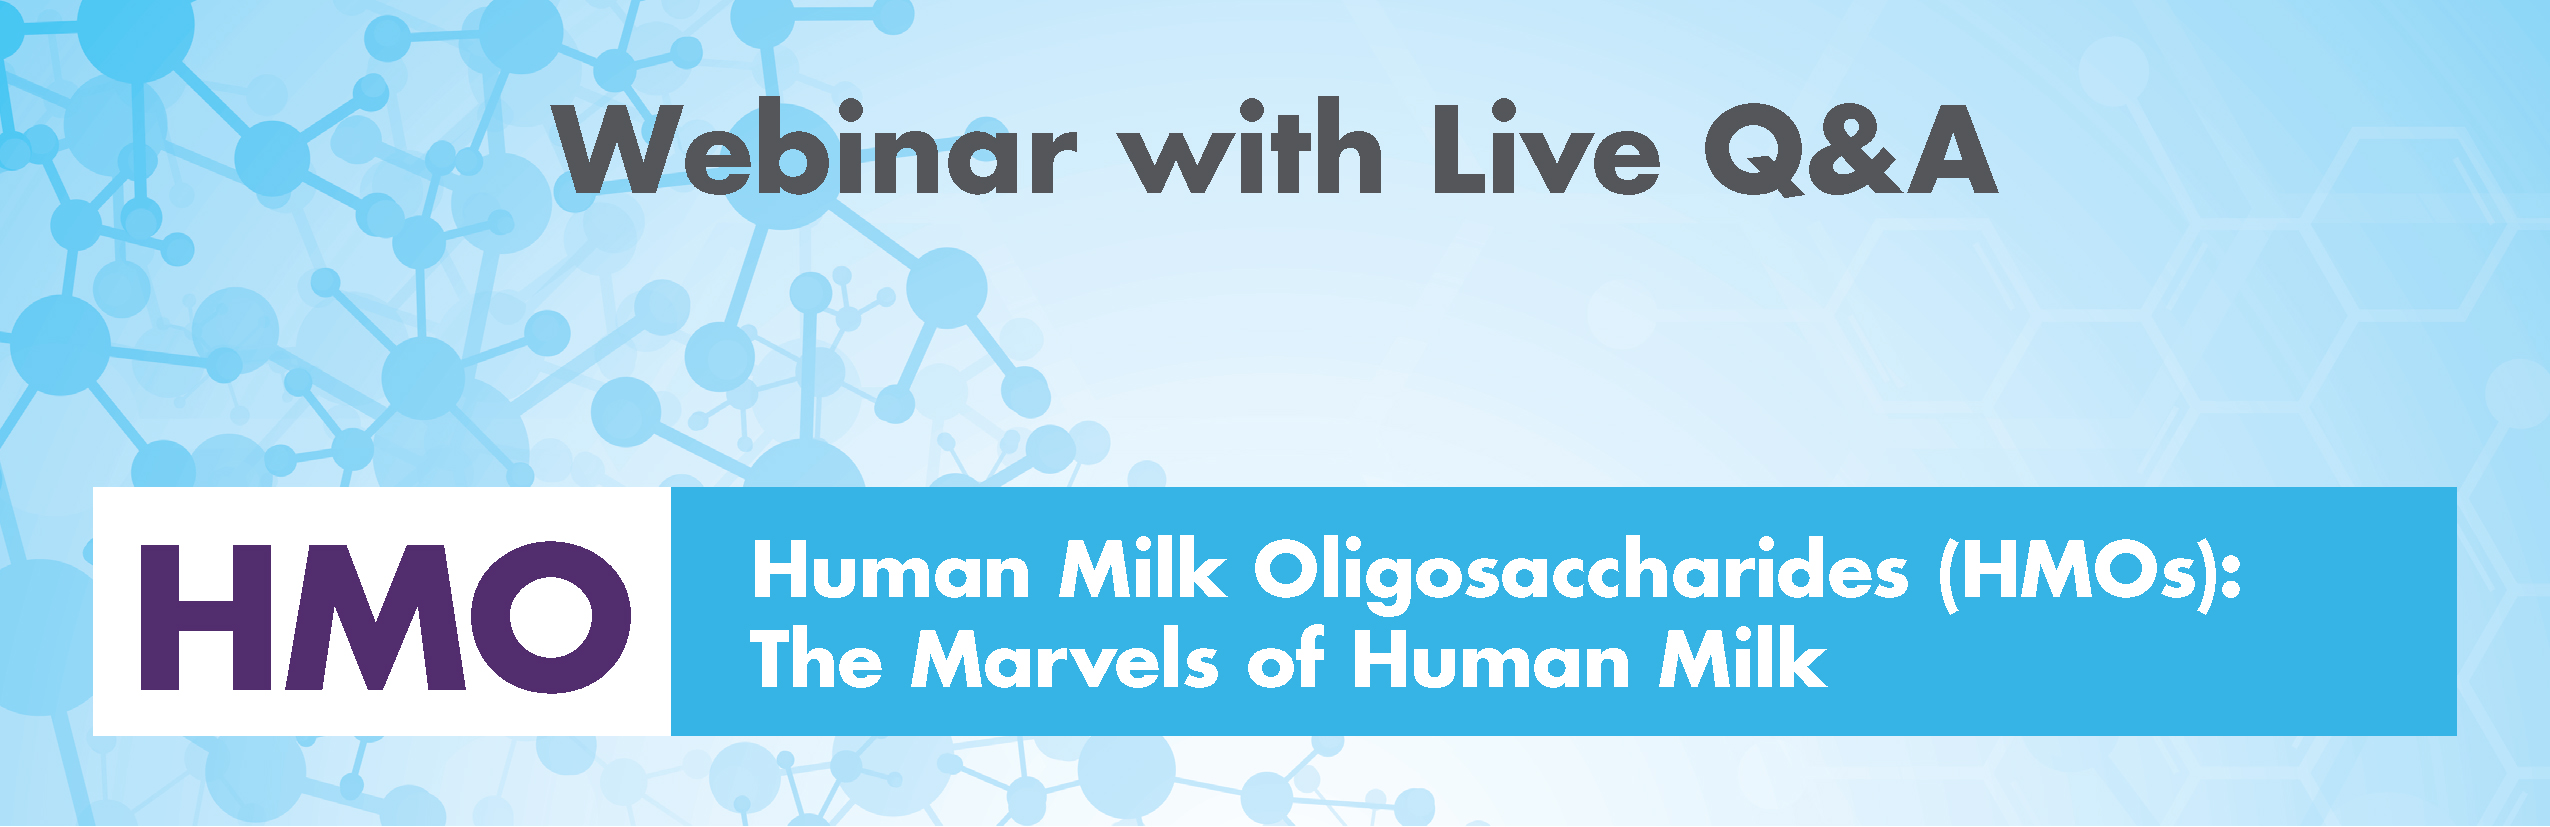 Register for an upcoming webinar to discuss the marvels of human milk oligosaccharides